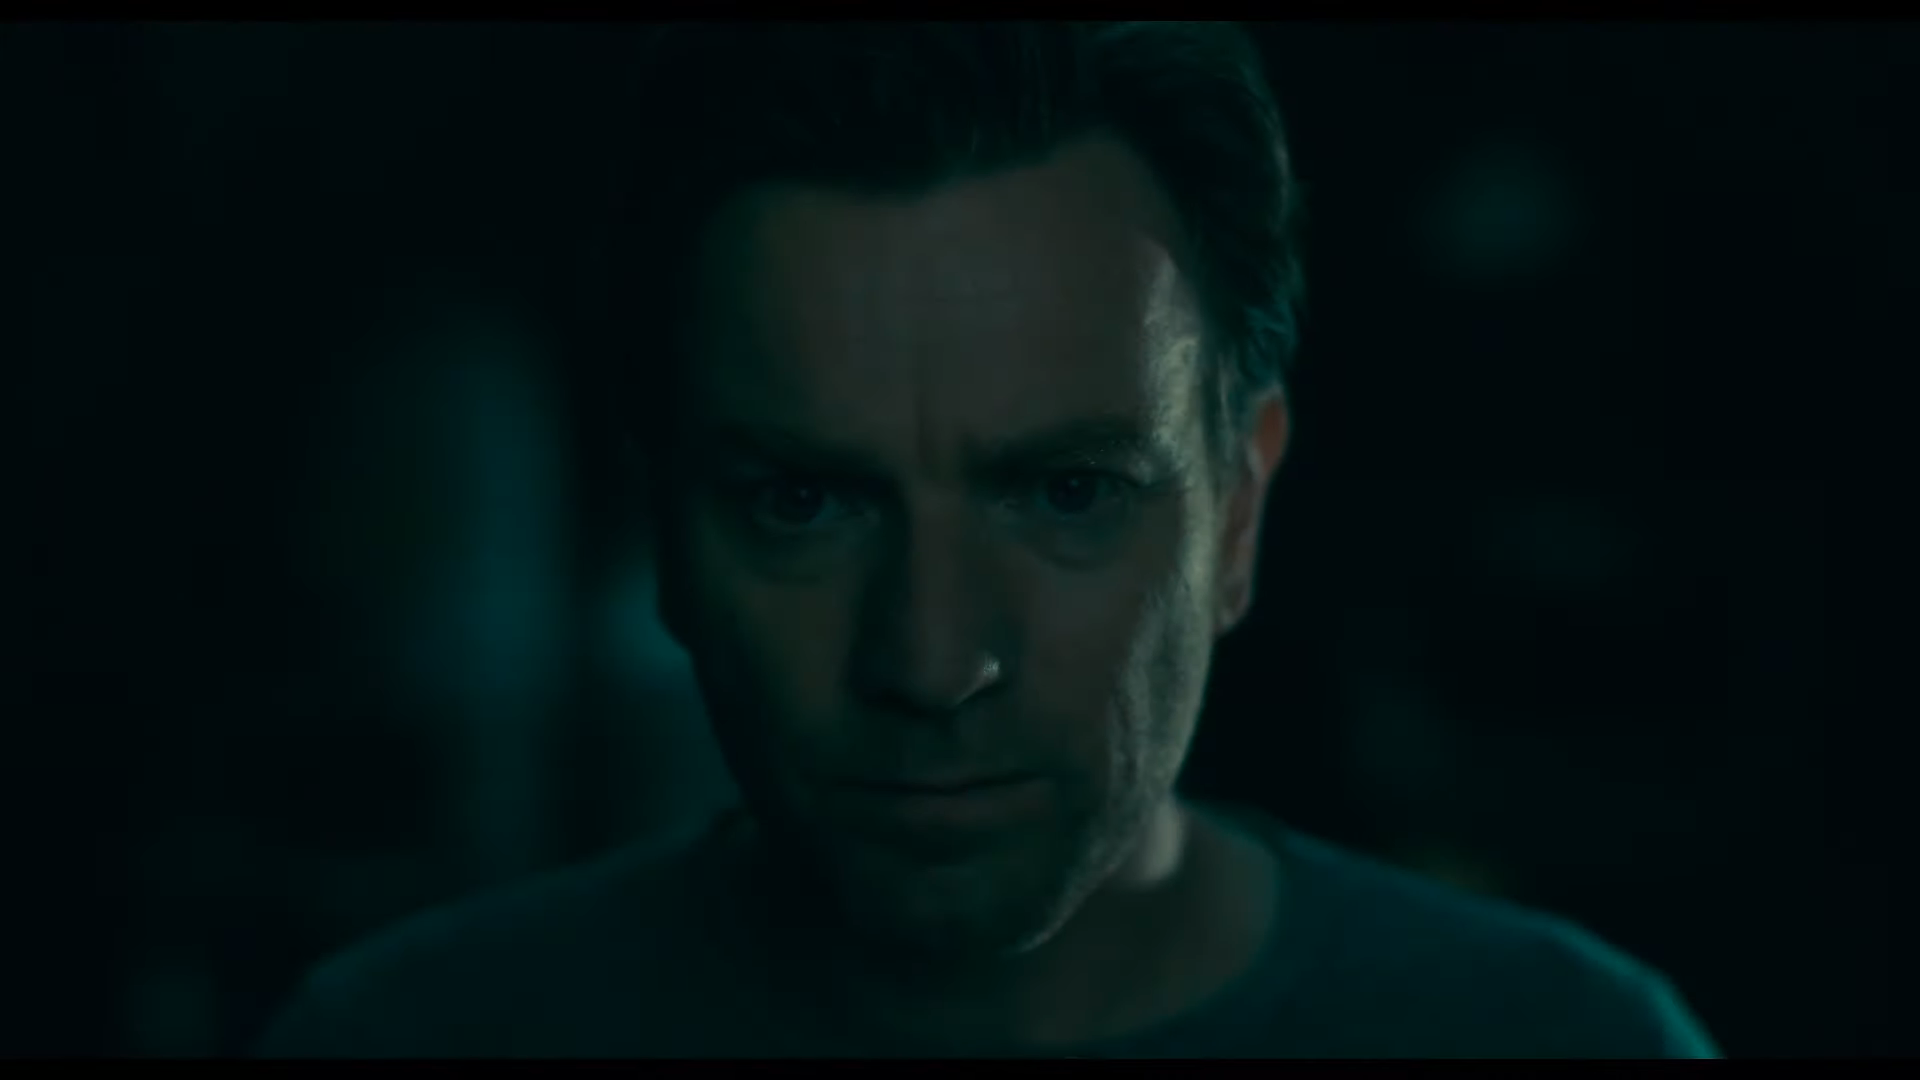 Watch The First Trailer For The Shining Sequel Doctor Sleep The Morning Call